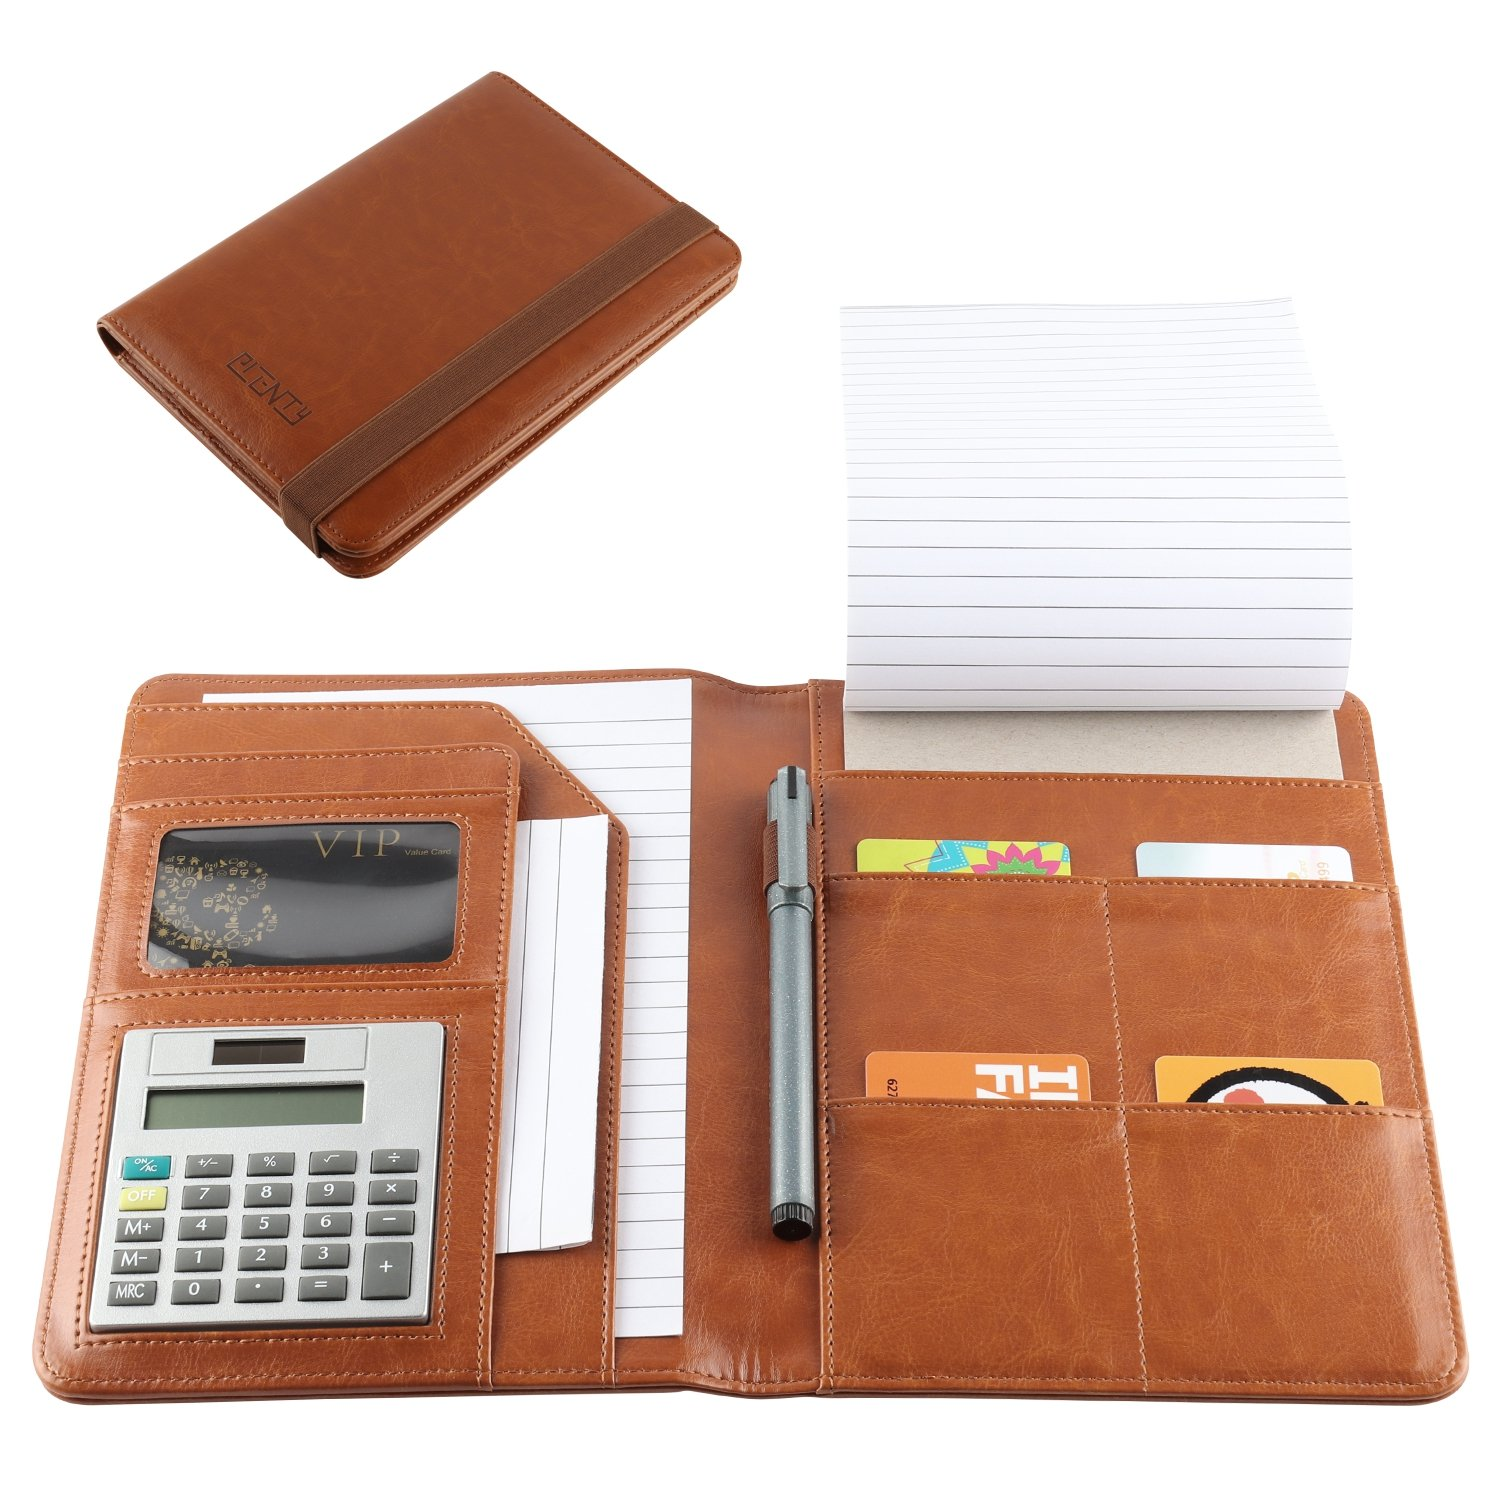 Leather Portfolio, Small Notebook Padholder Junior Legal Notepad with Calculator, 5 x 8 Inches Note Paper, Pen Holder and Business Card Slots.